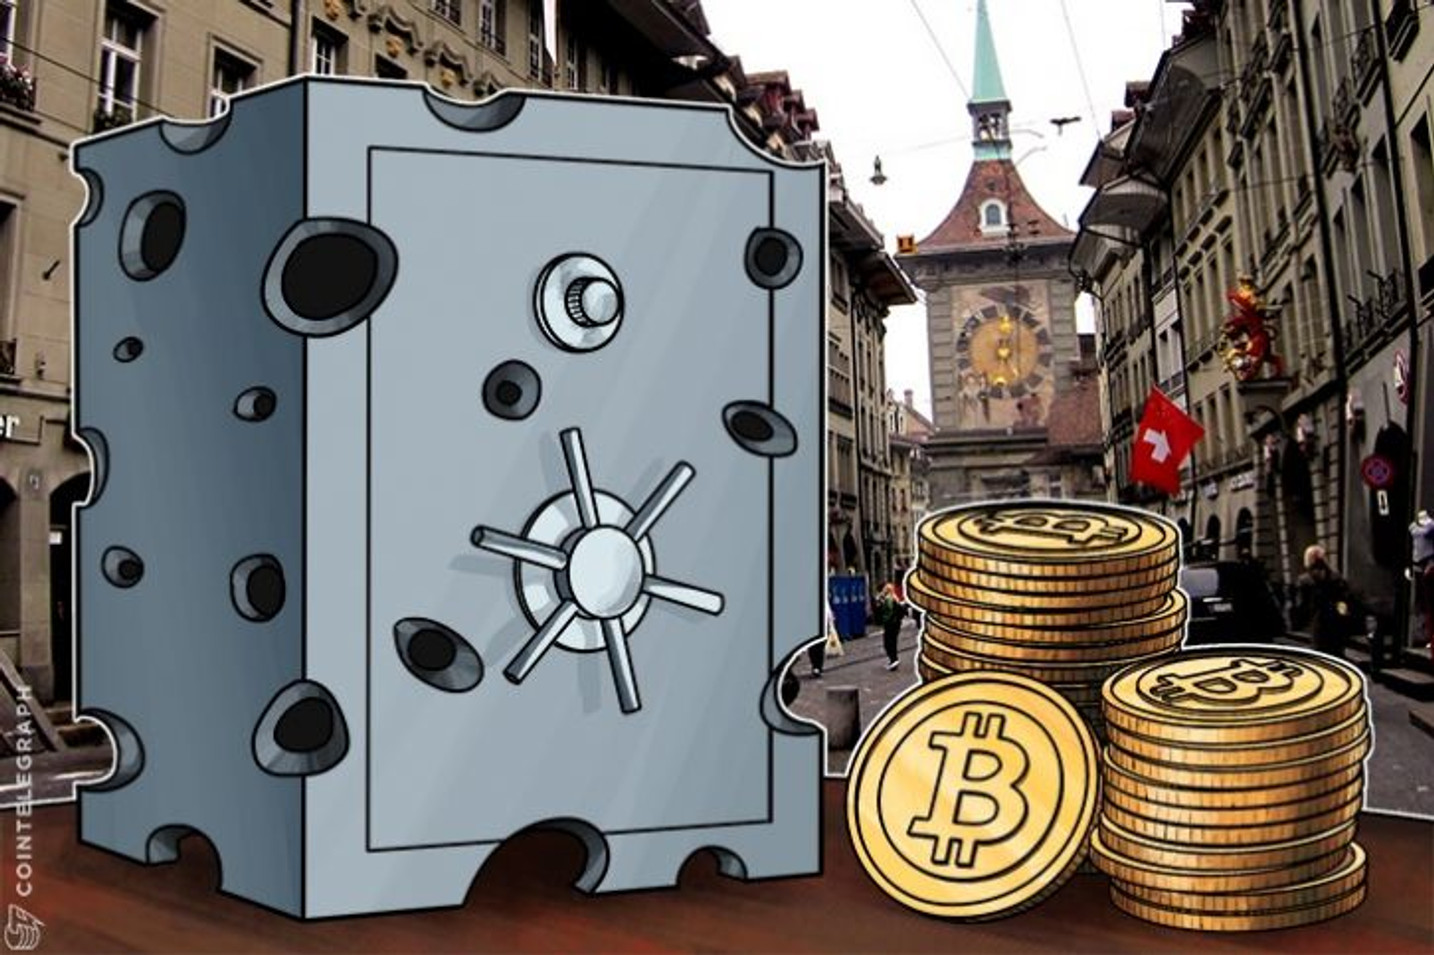 Vontobel Bitcoin Certificate Is 'Most Traded' Product On Main Swiss Exchange